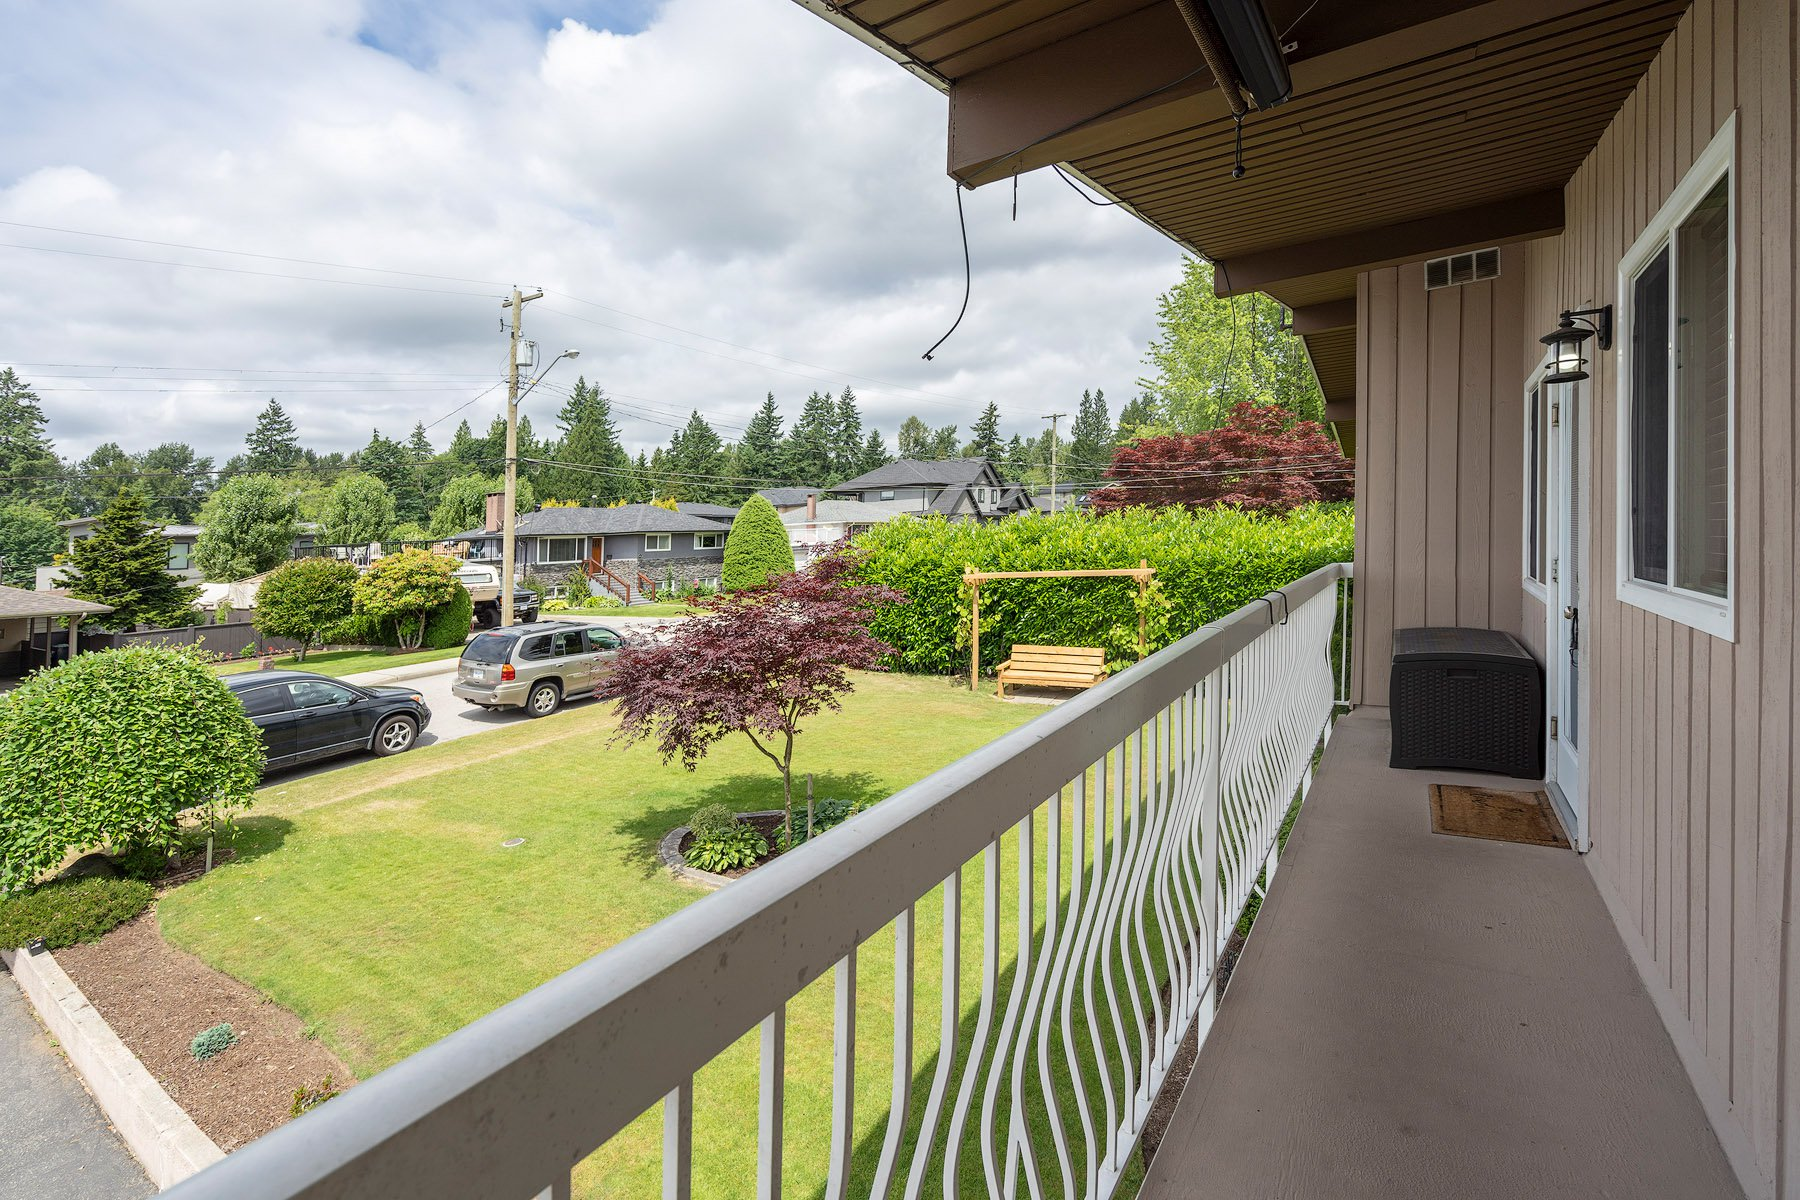 Photo 25: Photos: 423 MONTGOMERY Street in Coquitlam: Central Coquitlam House for sale : MLS®# R2380693